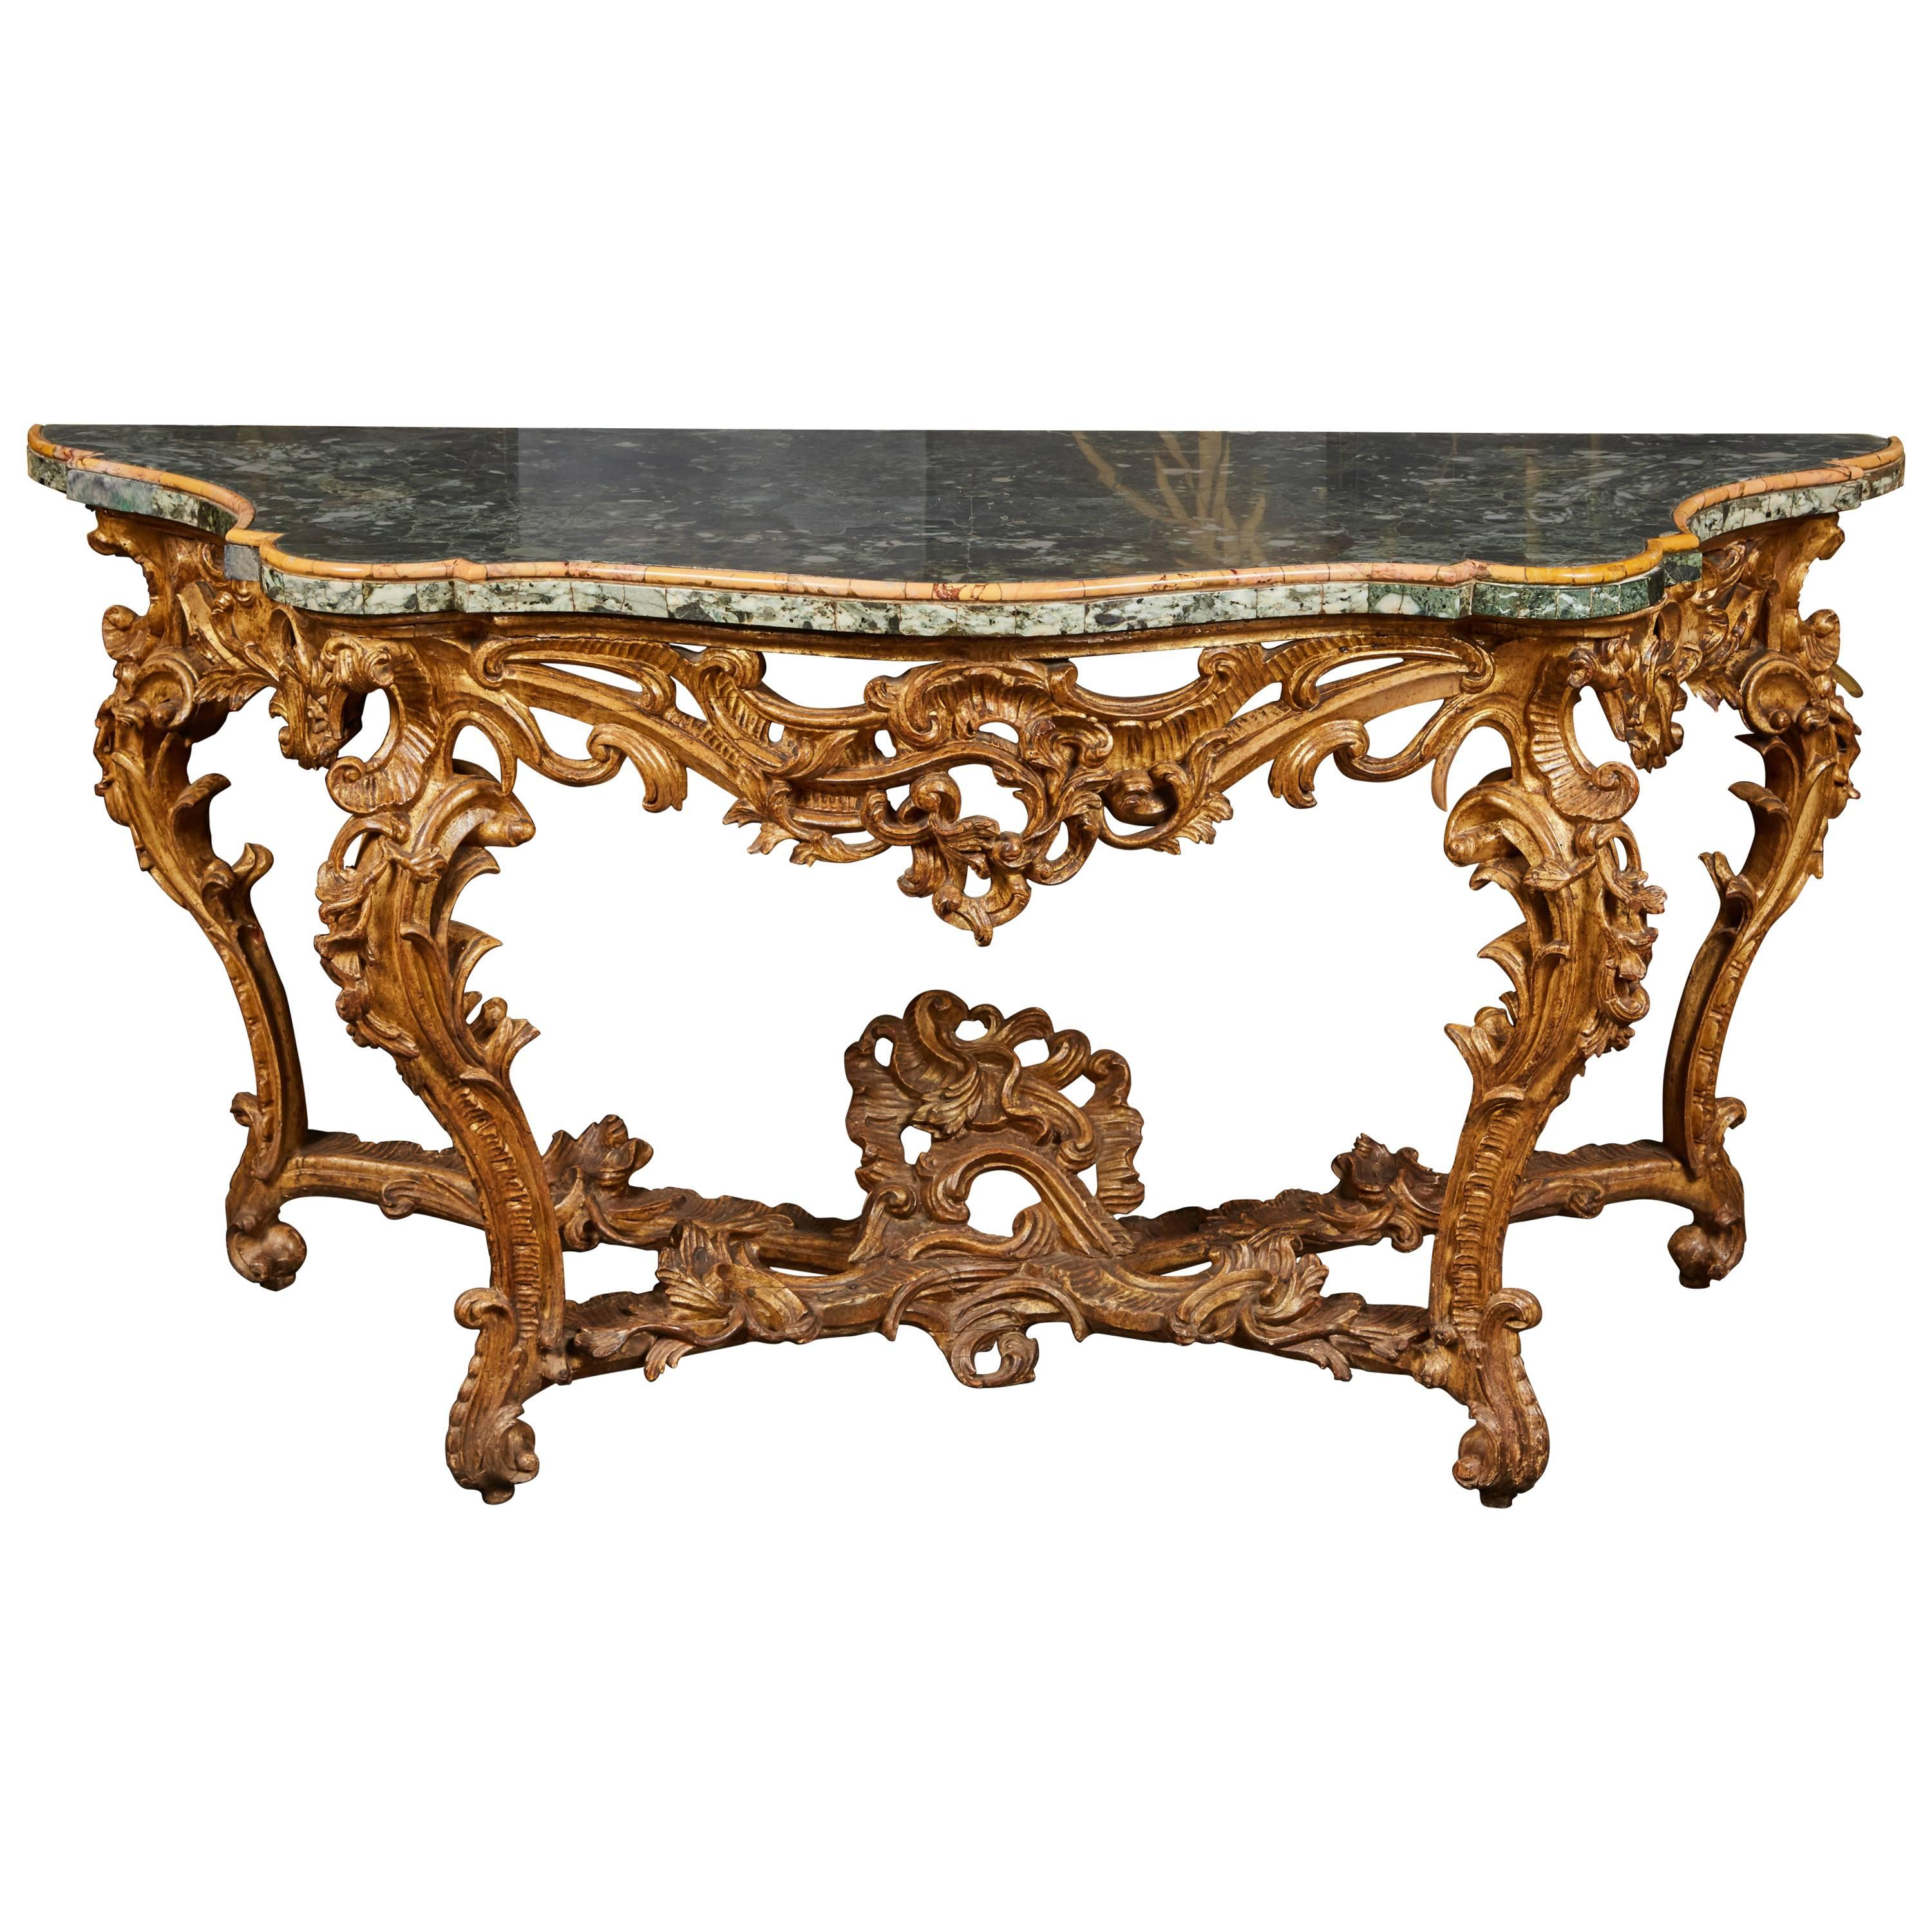 Large Mid-18th Century Italian Rococo Giltwood Green Marble-Top Console